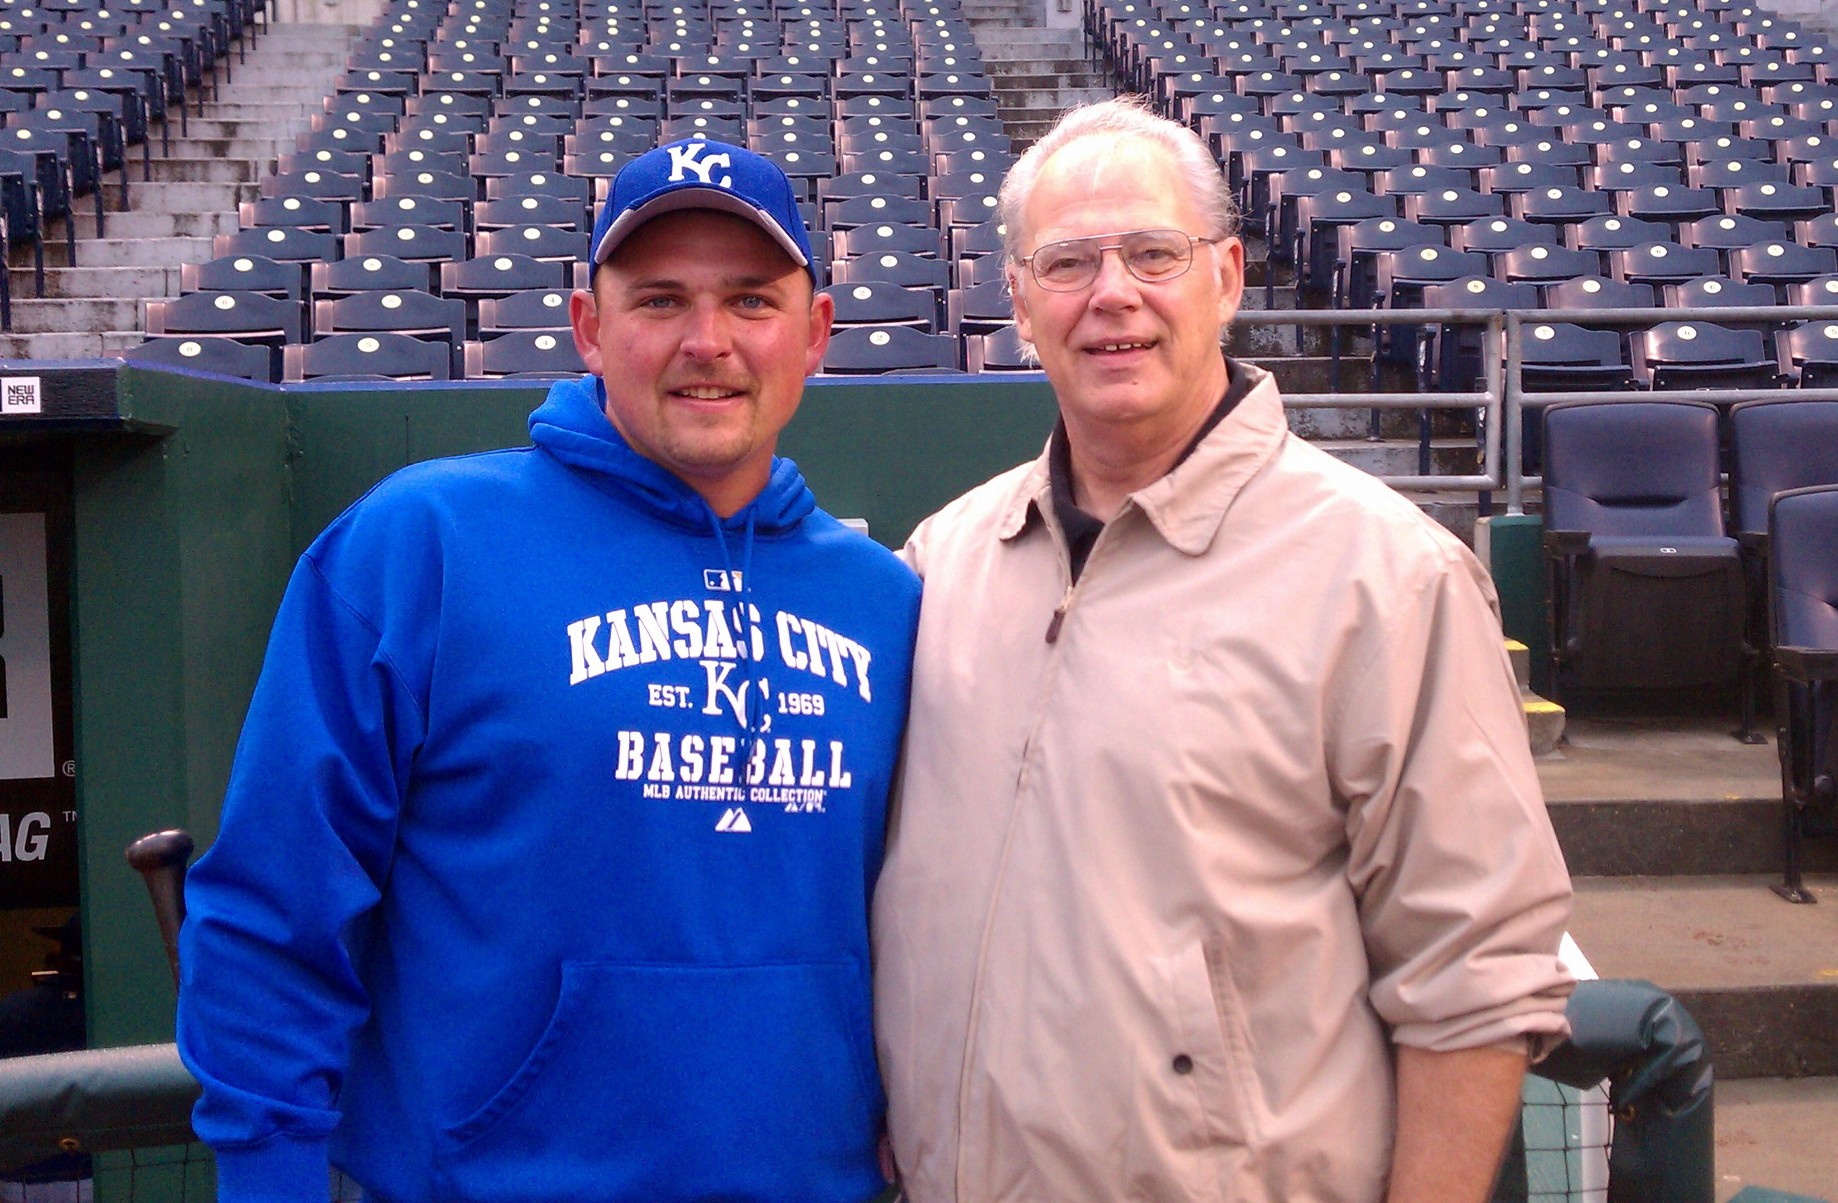 Billy Butler of the 2011 Royals meets Bill Butler of the 1969 Royals